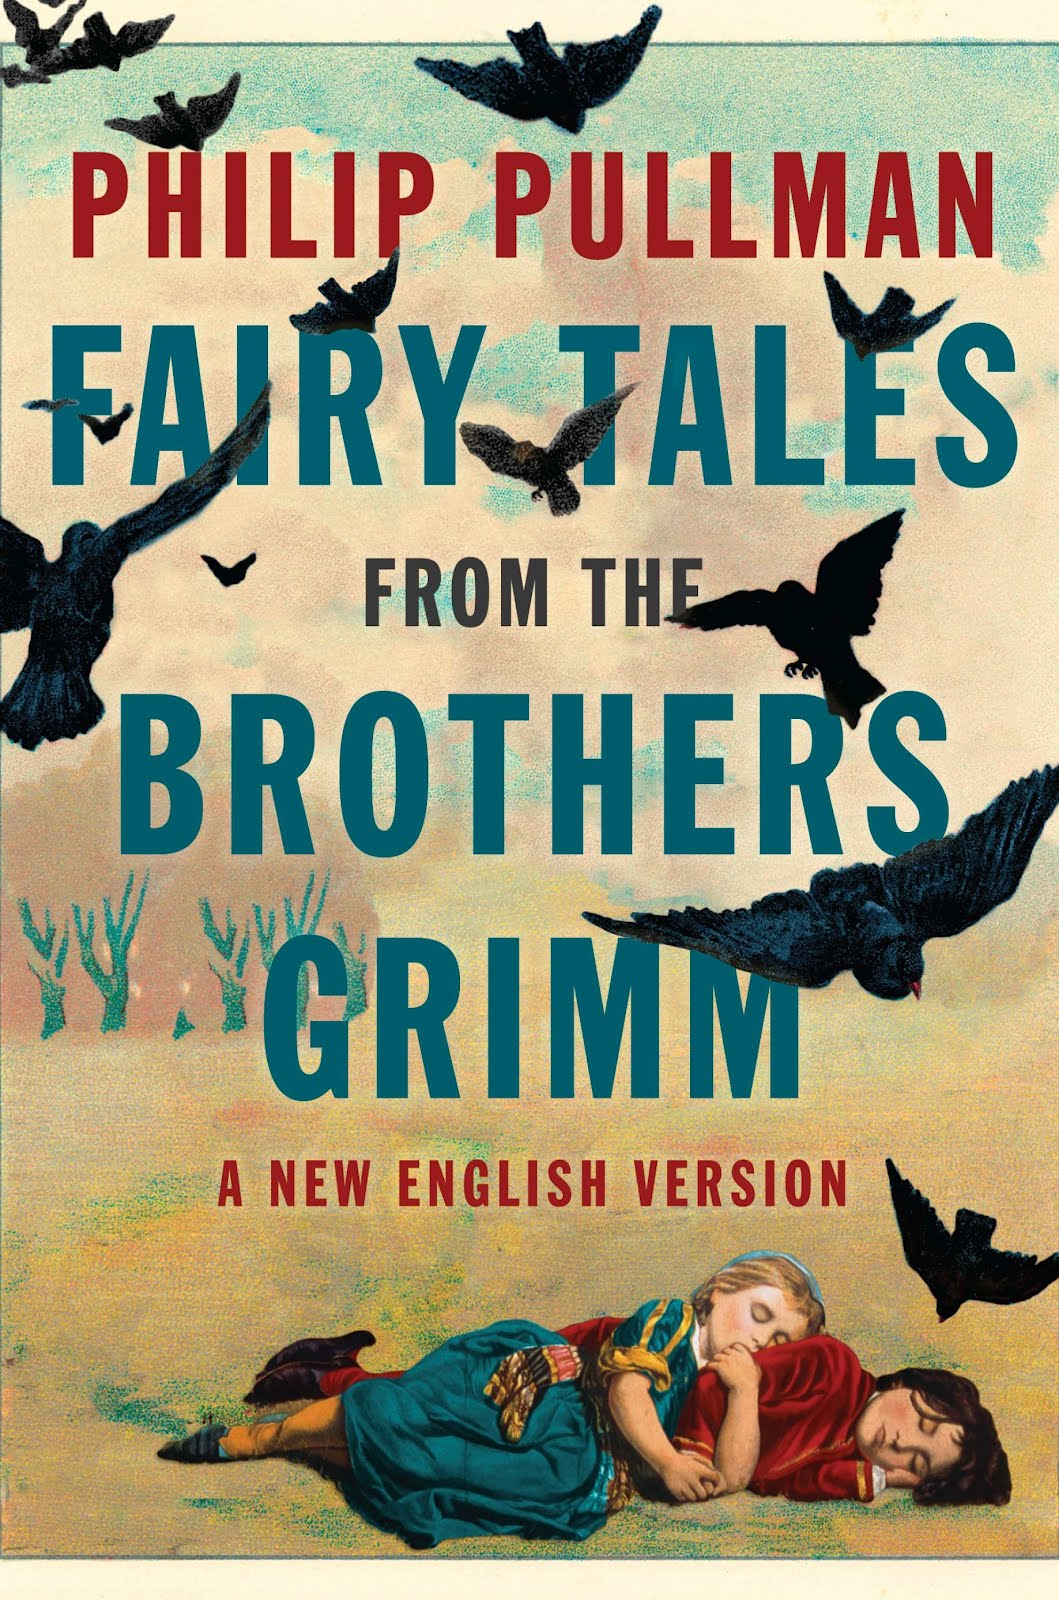 decoding the grimm brothers In english as grimm's fairy tales, is a timeless literary masterpiece grimms' fairy tales the brothers grimm read more 1812 grimm's fairy tales the wolf and - pinkmonkeycom decoding fairy tales read more children need fairy tales read more.